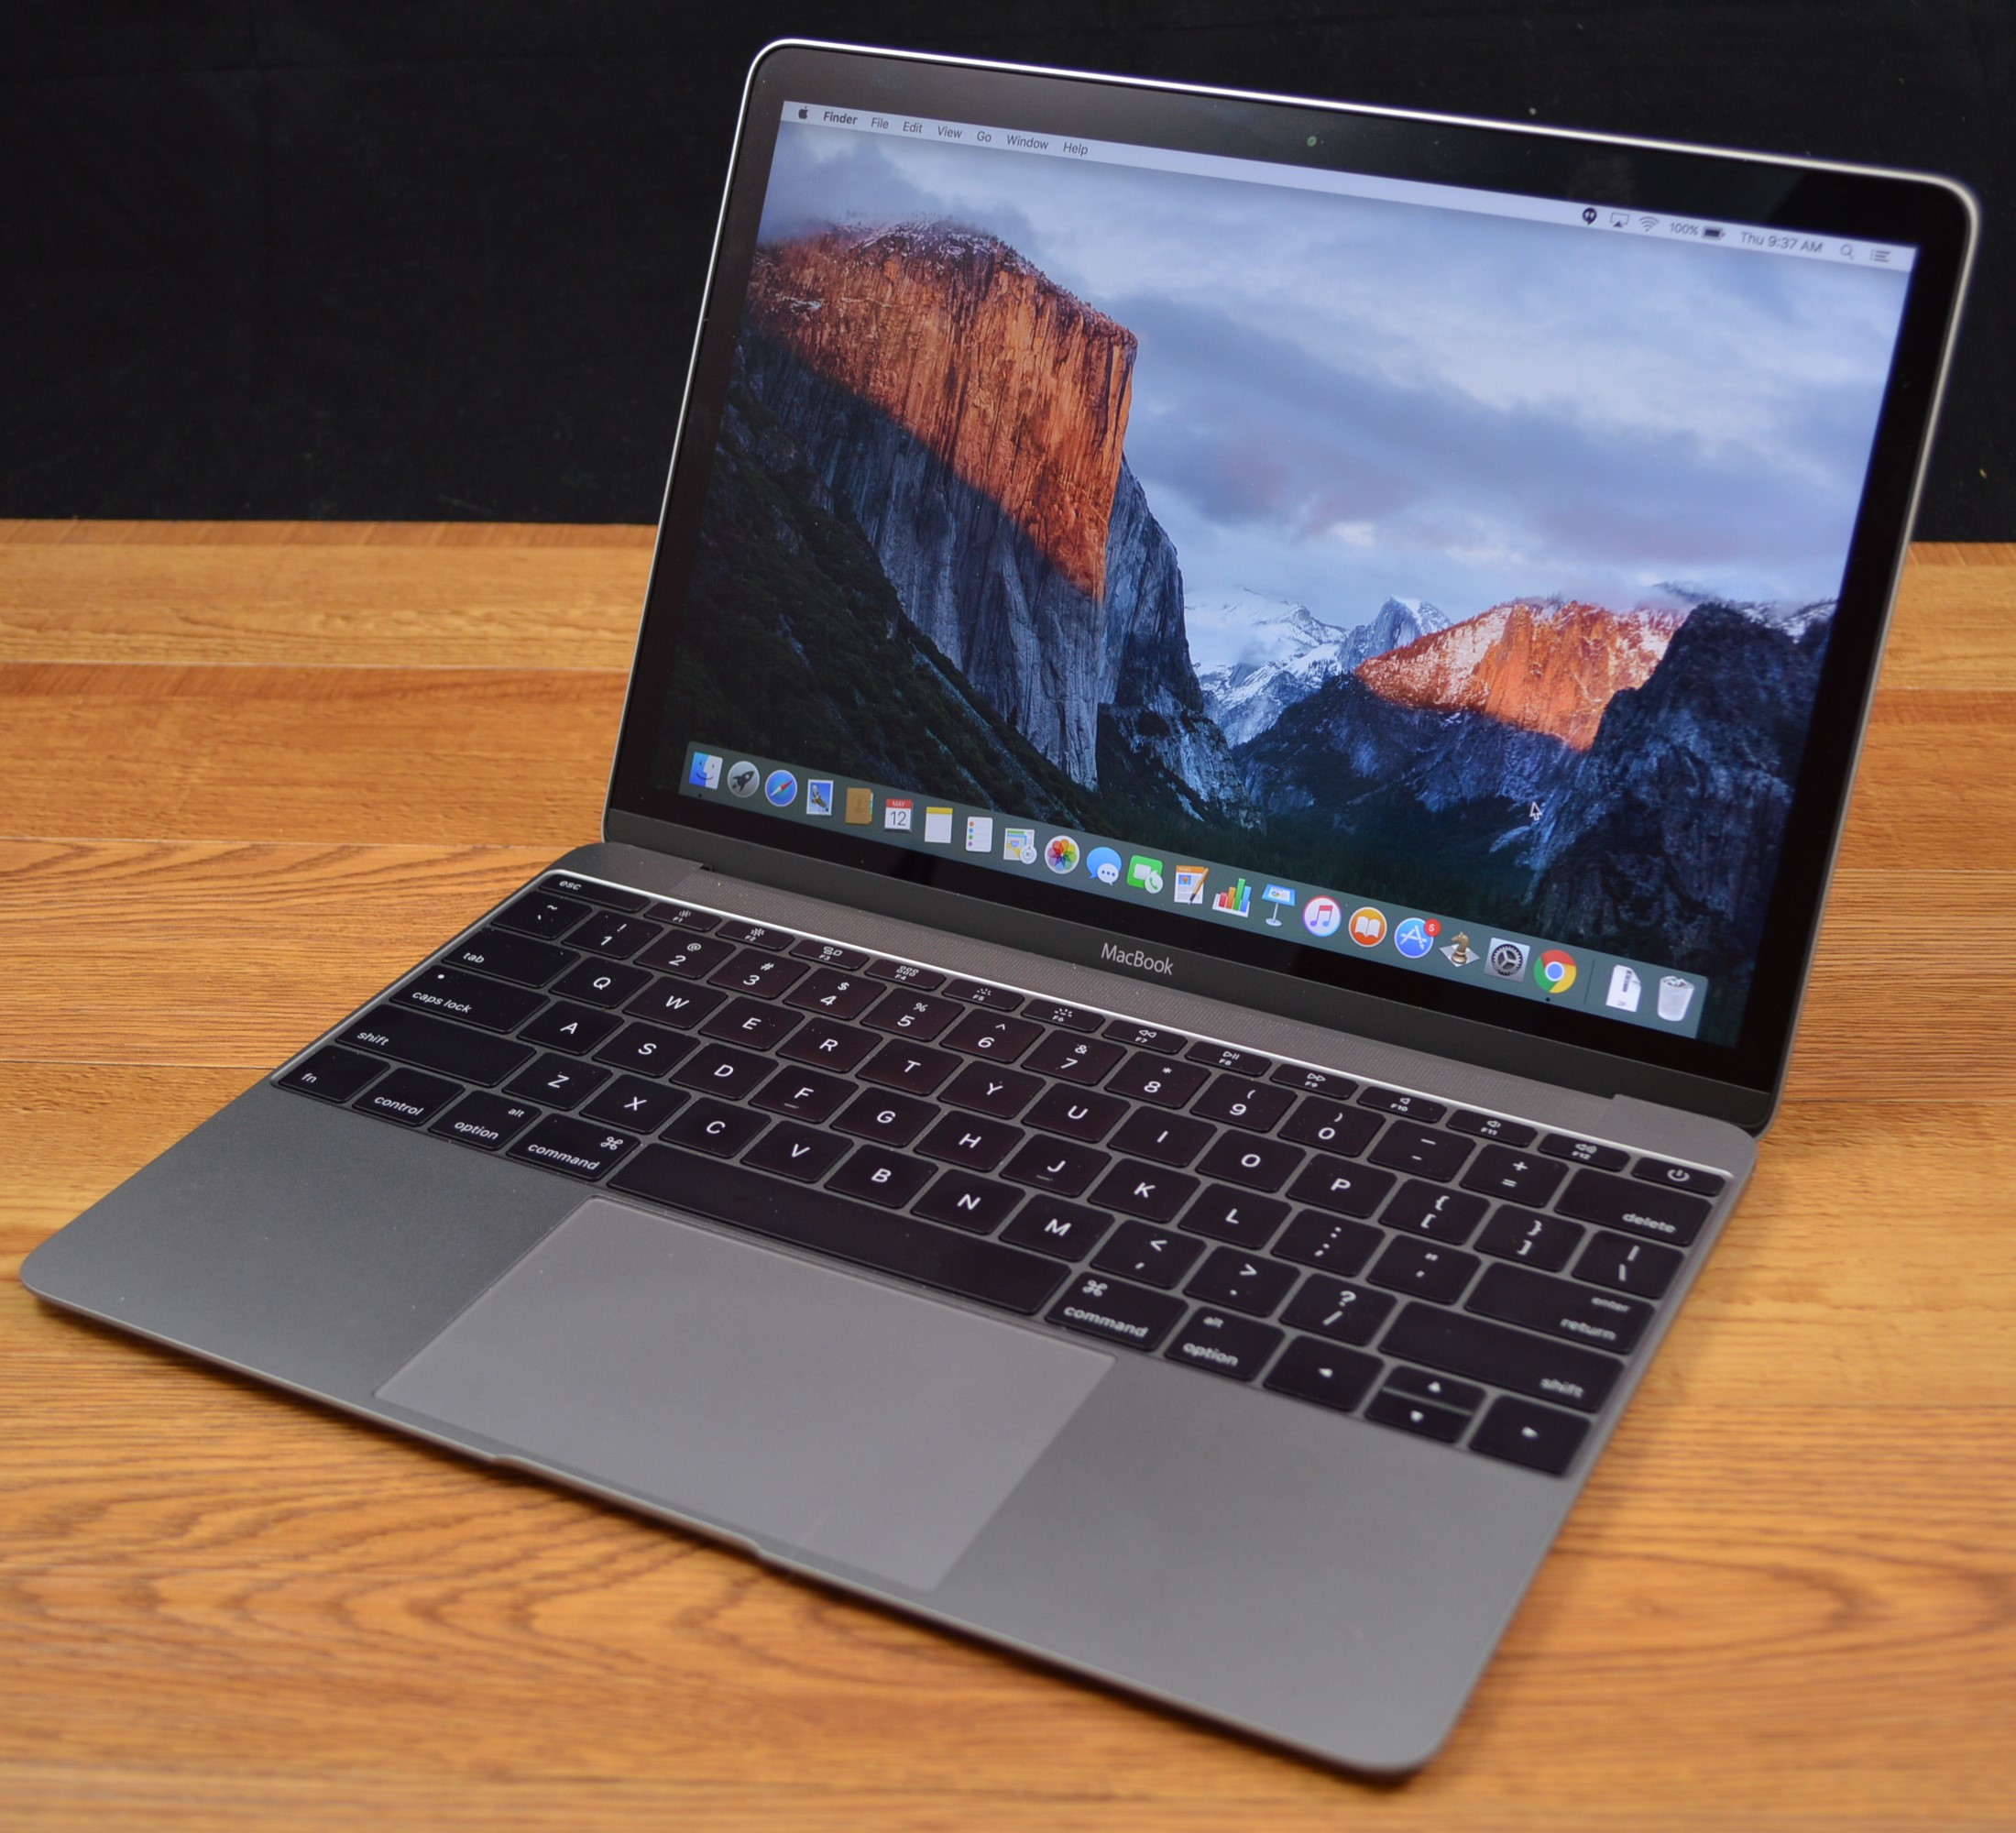 Apple MacBook (2016) Review: The Good, The Bad, The Expensive